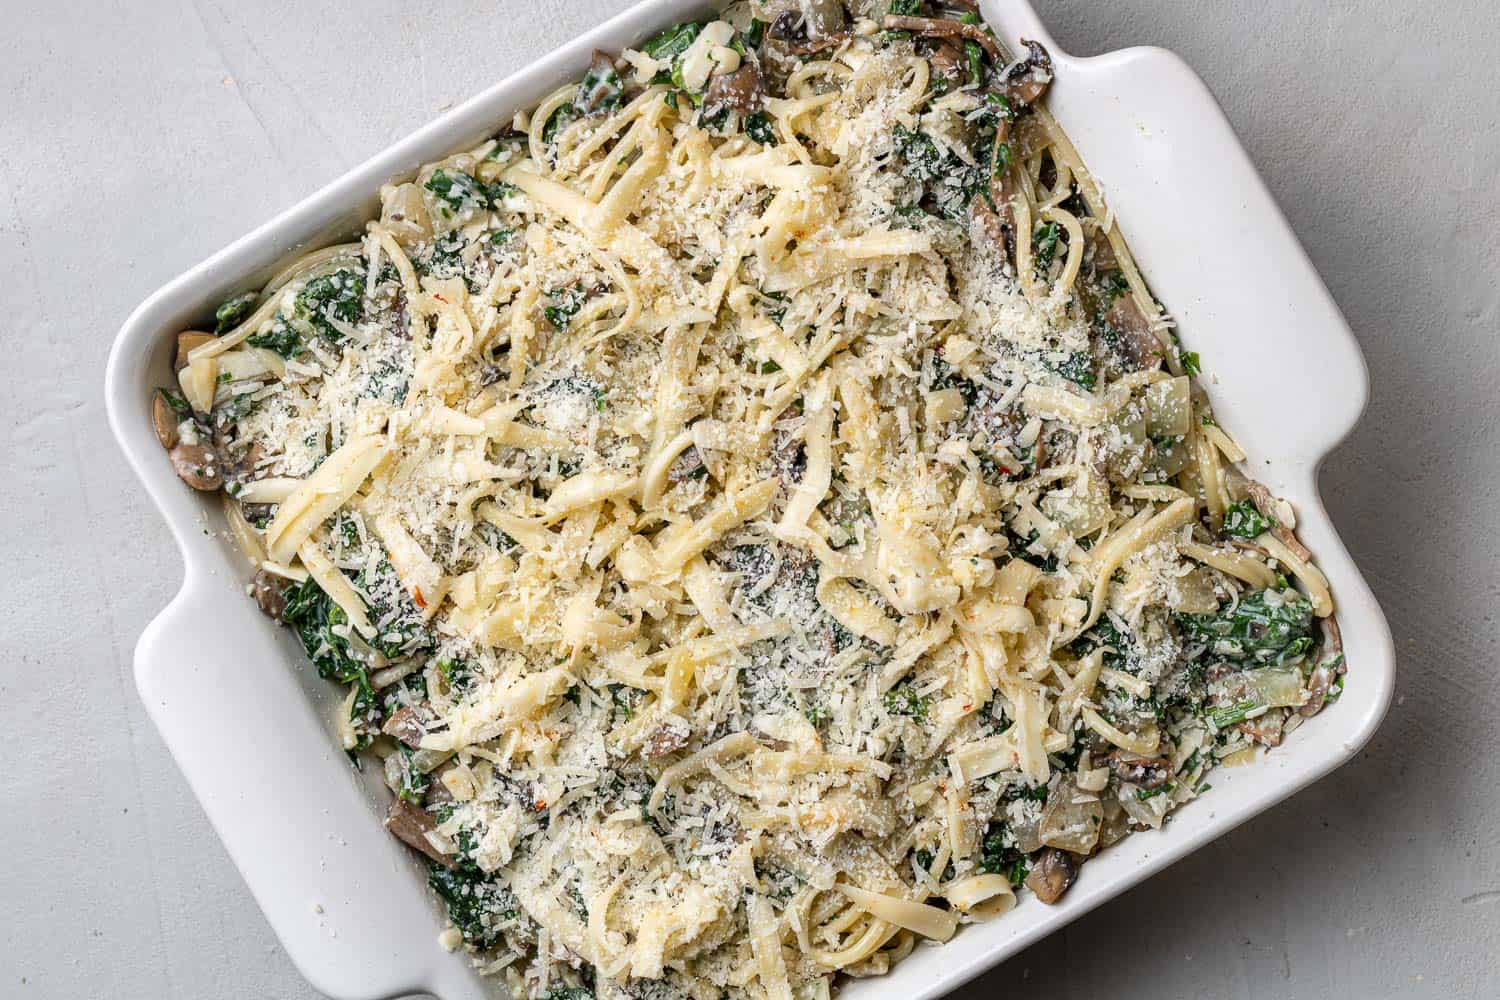 Spinach spaghetti topped with cheese.